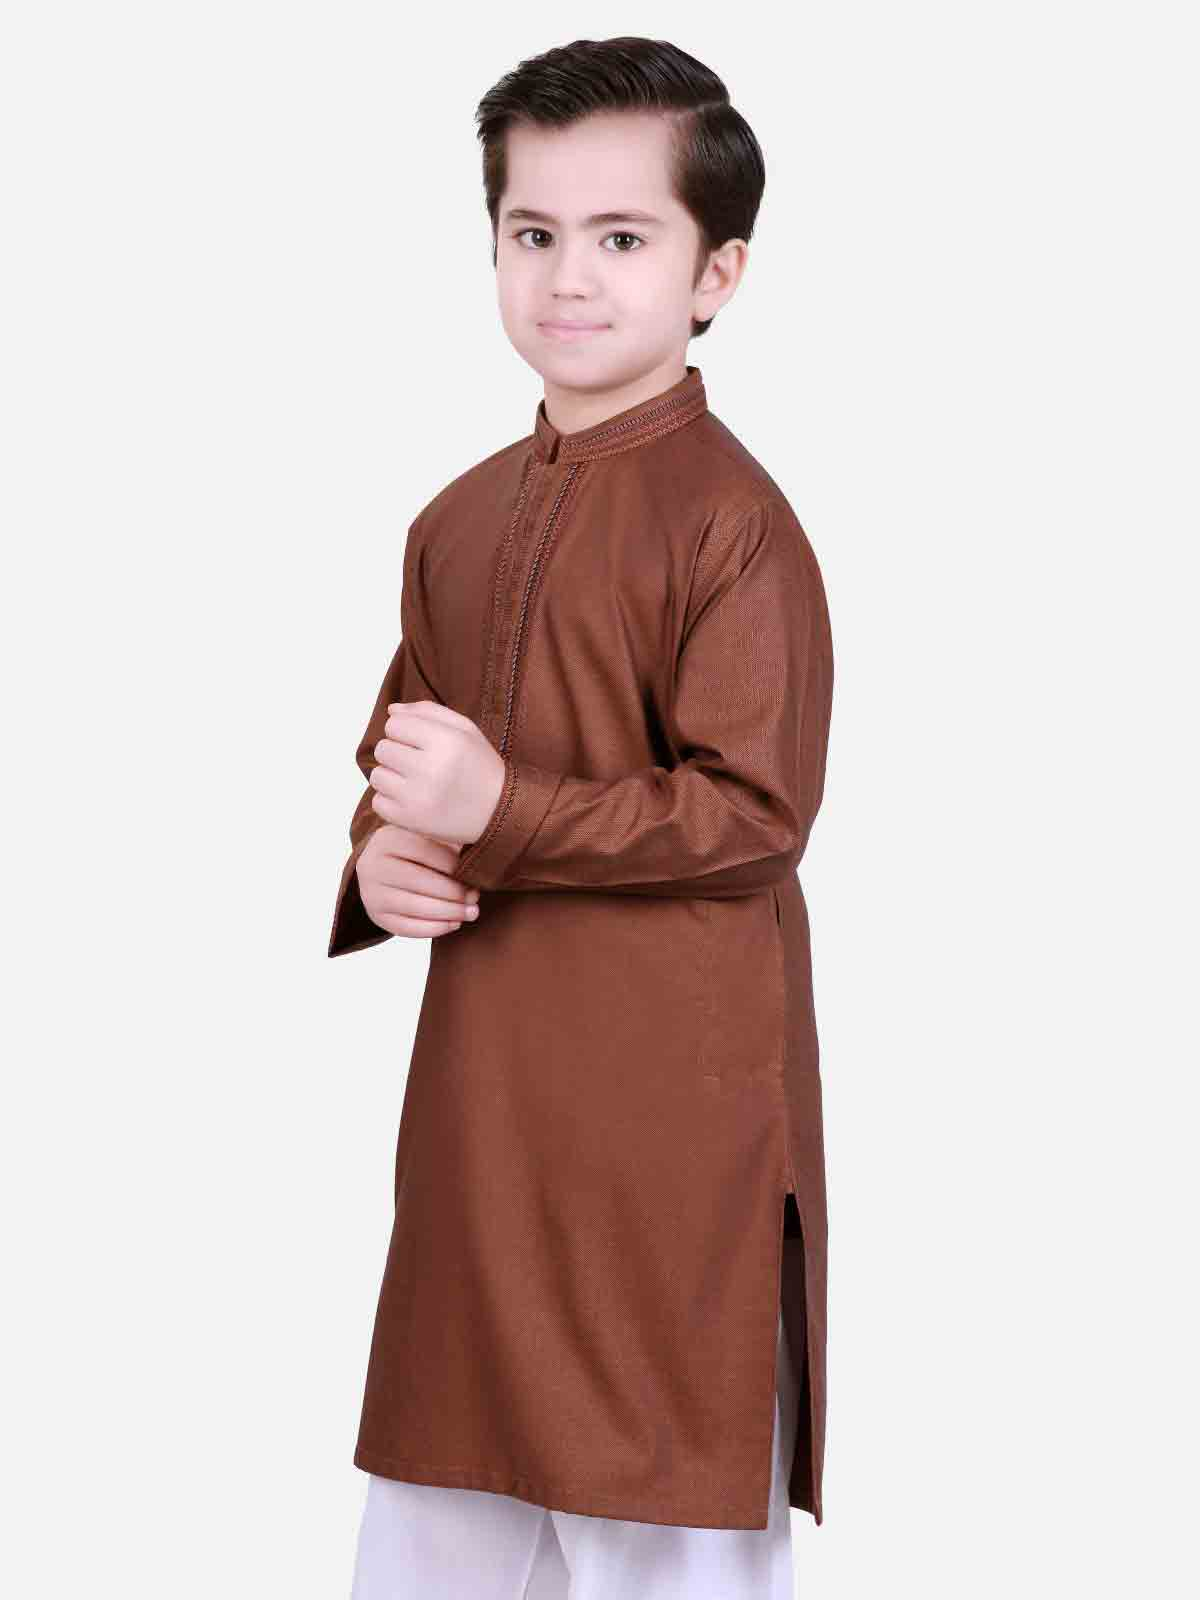 Brown kurta pajama latest eid dresses for little boys in Pakistan 2017